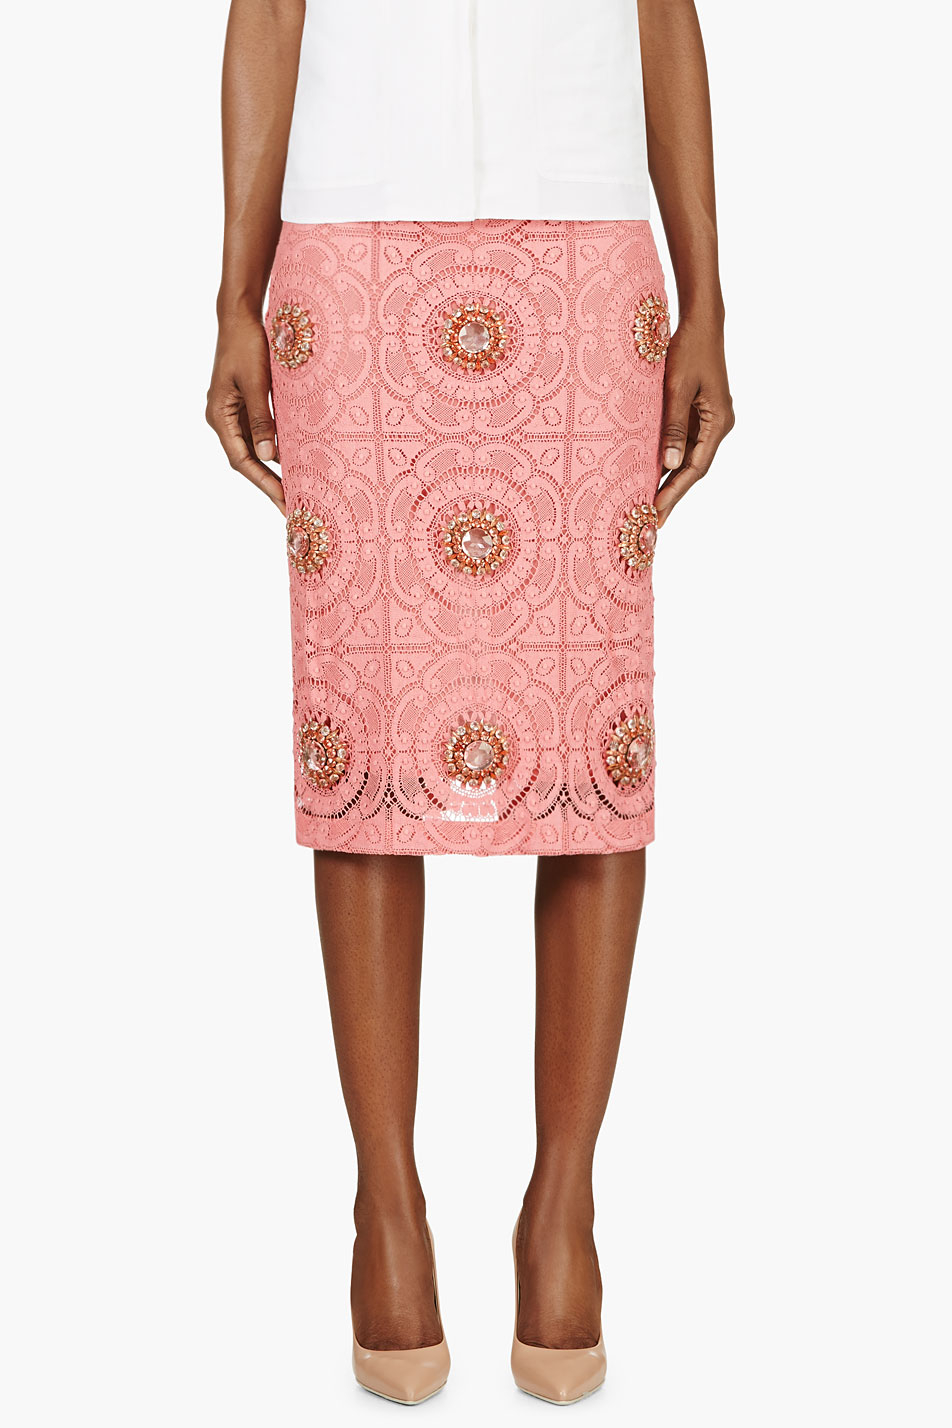 Burberry Prorsum Pink Lace Overlay Embellished Pencil ...